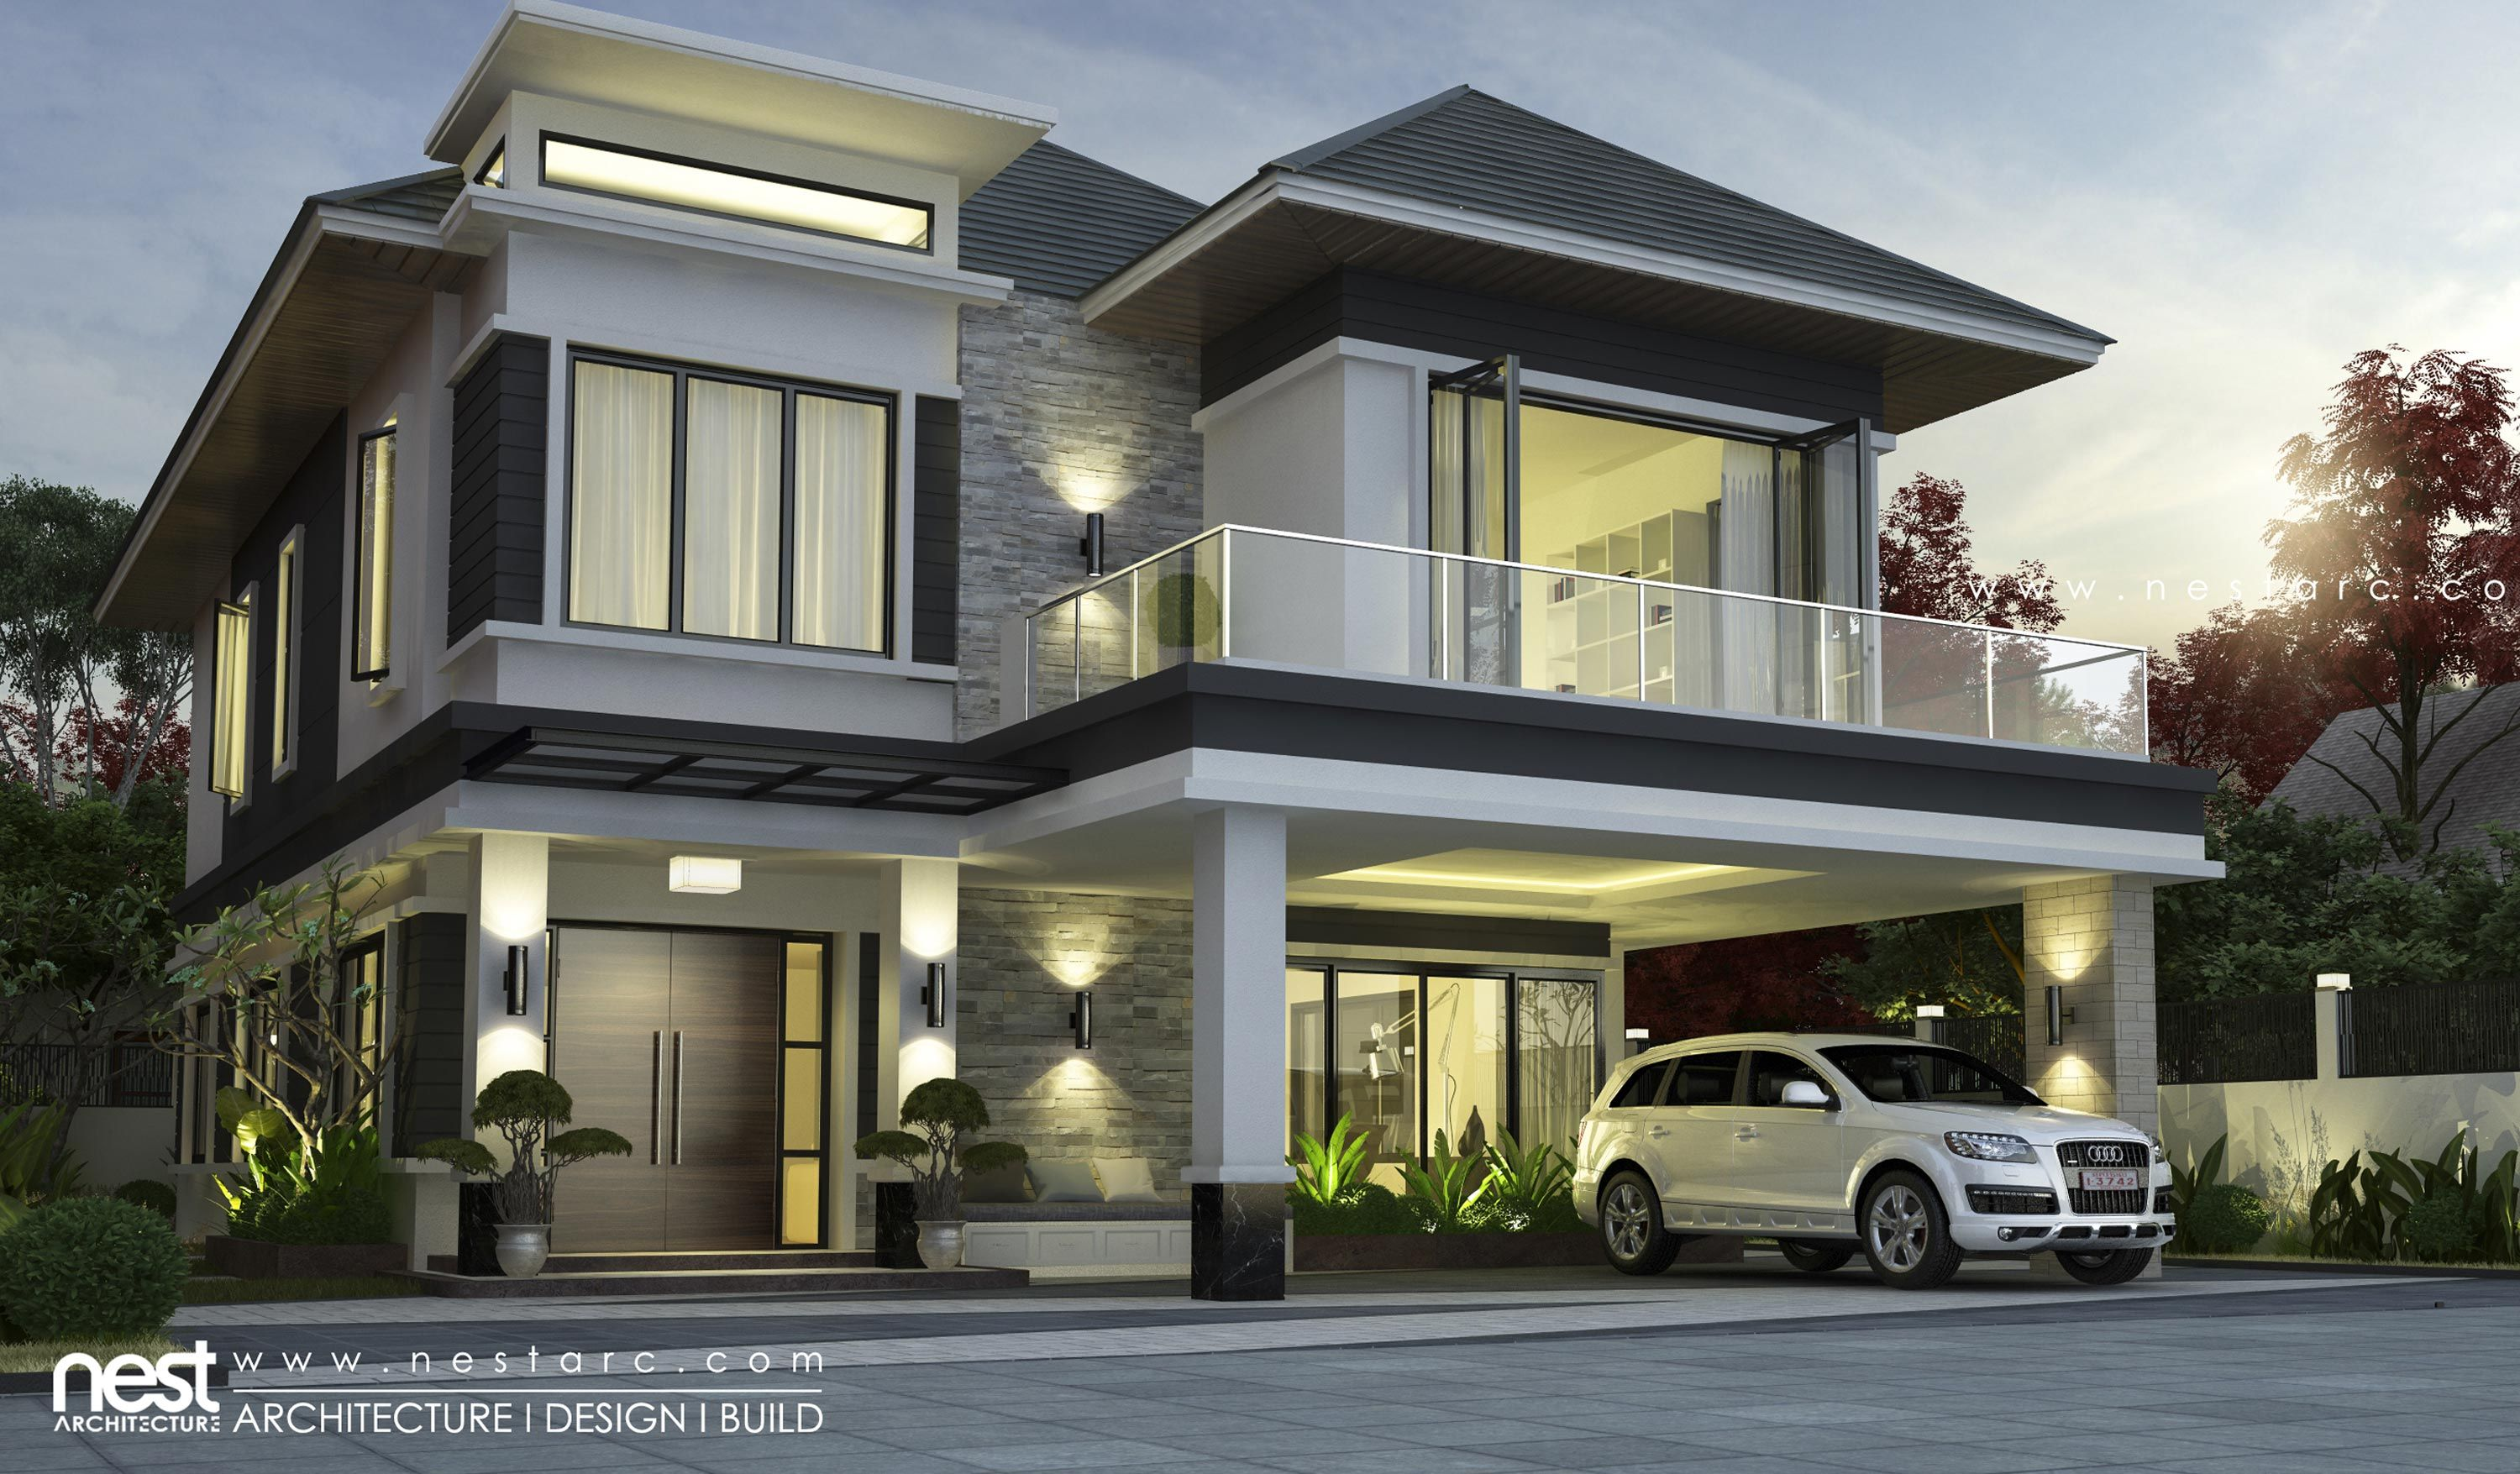 Modern Architecture House Villas Design - Fresh Modern Architecture House Villas  Design, Architecture Architecture Ultra Modern Home Designs Appealing